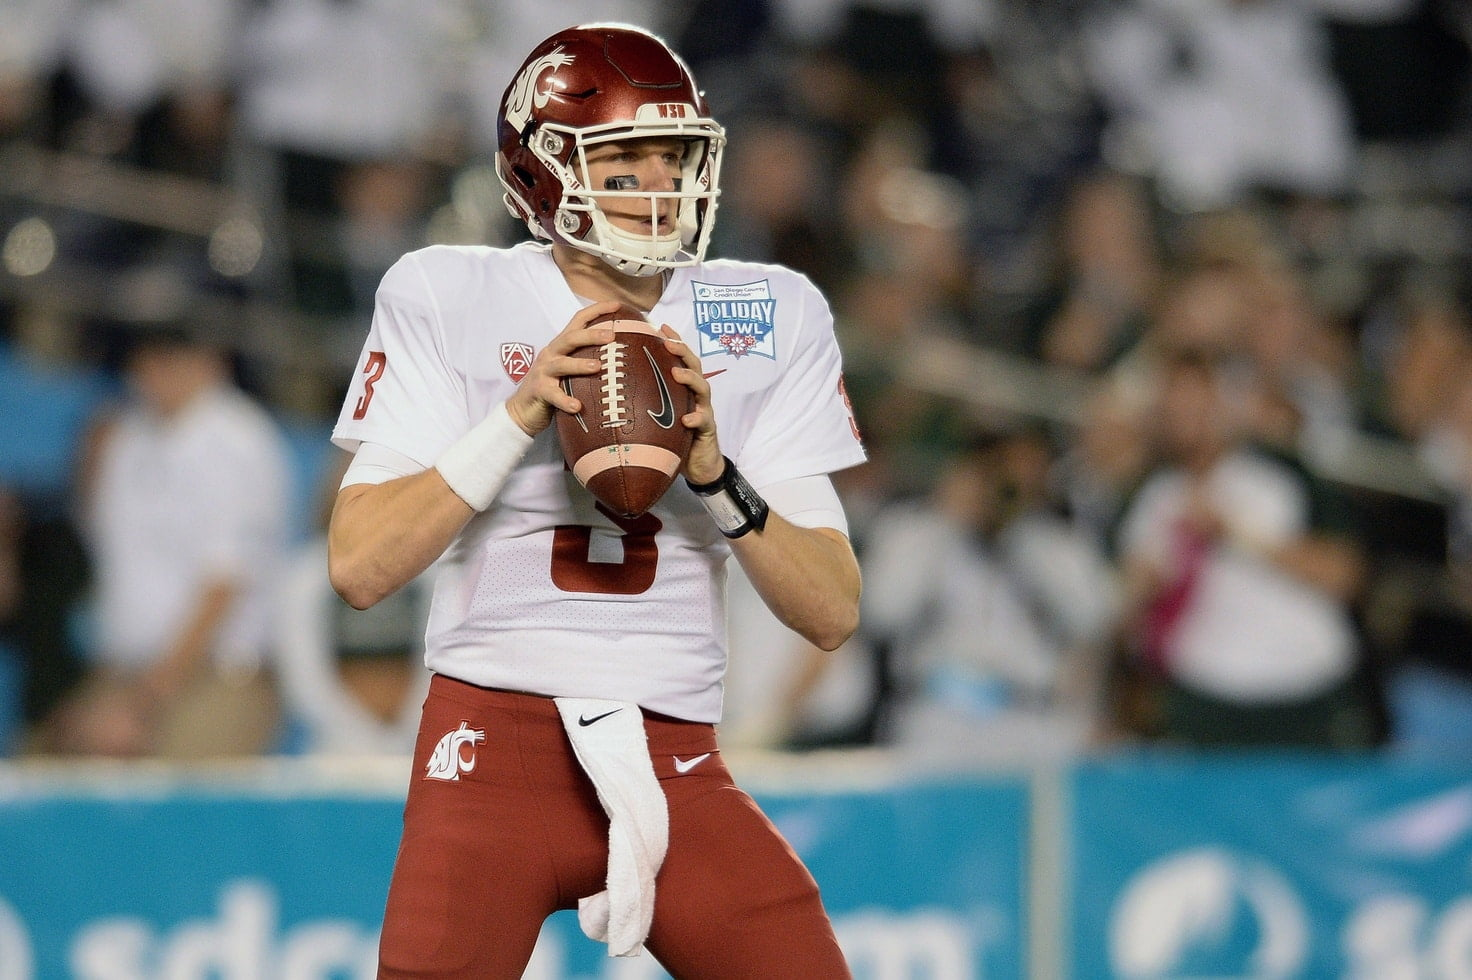 Tyler Hilinski's younger brother shares emotional message on